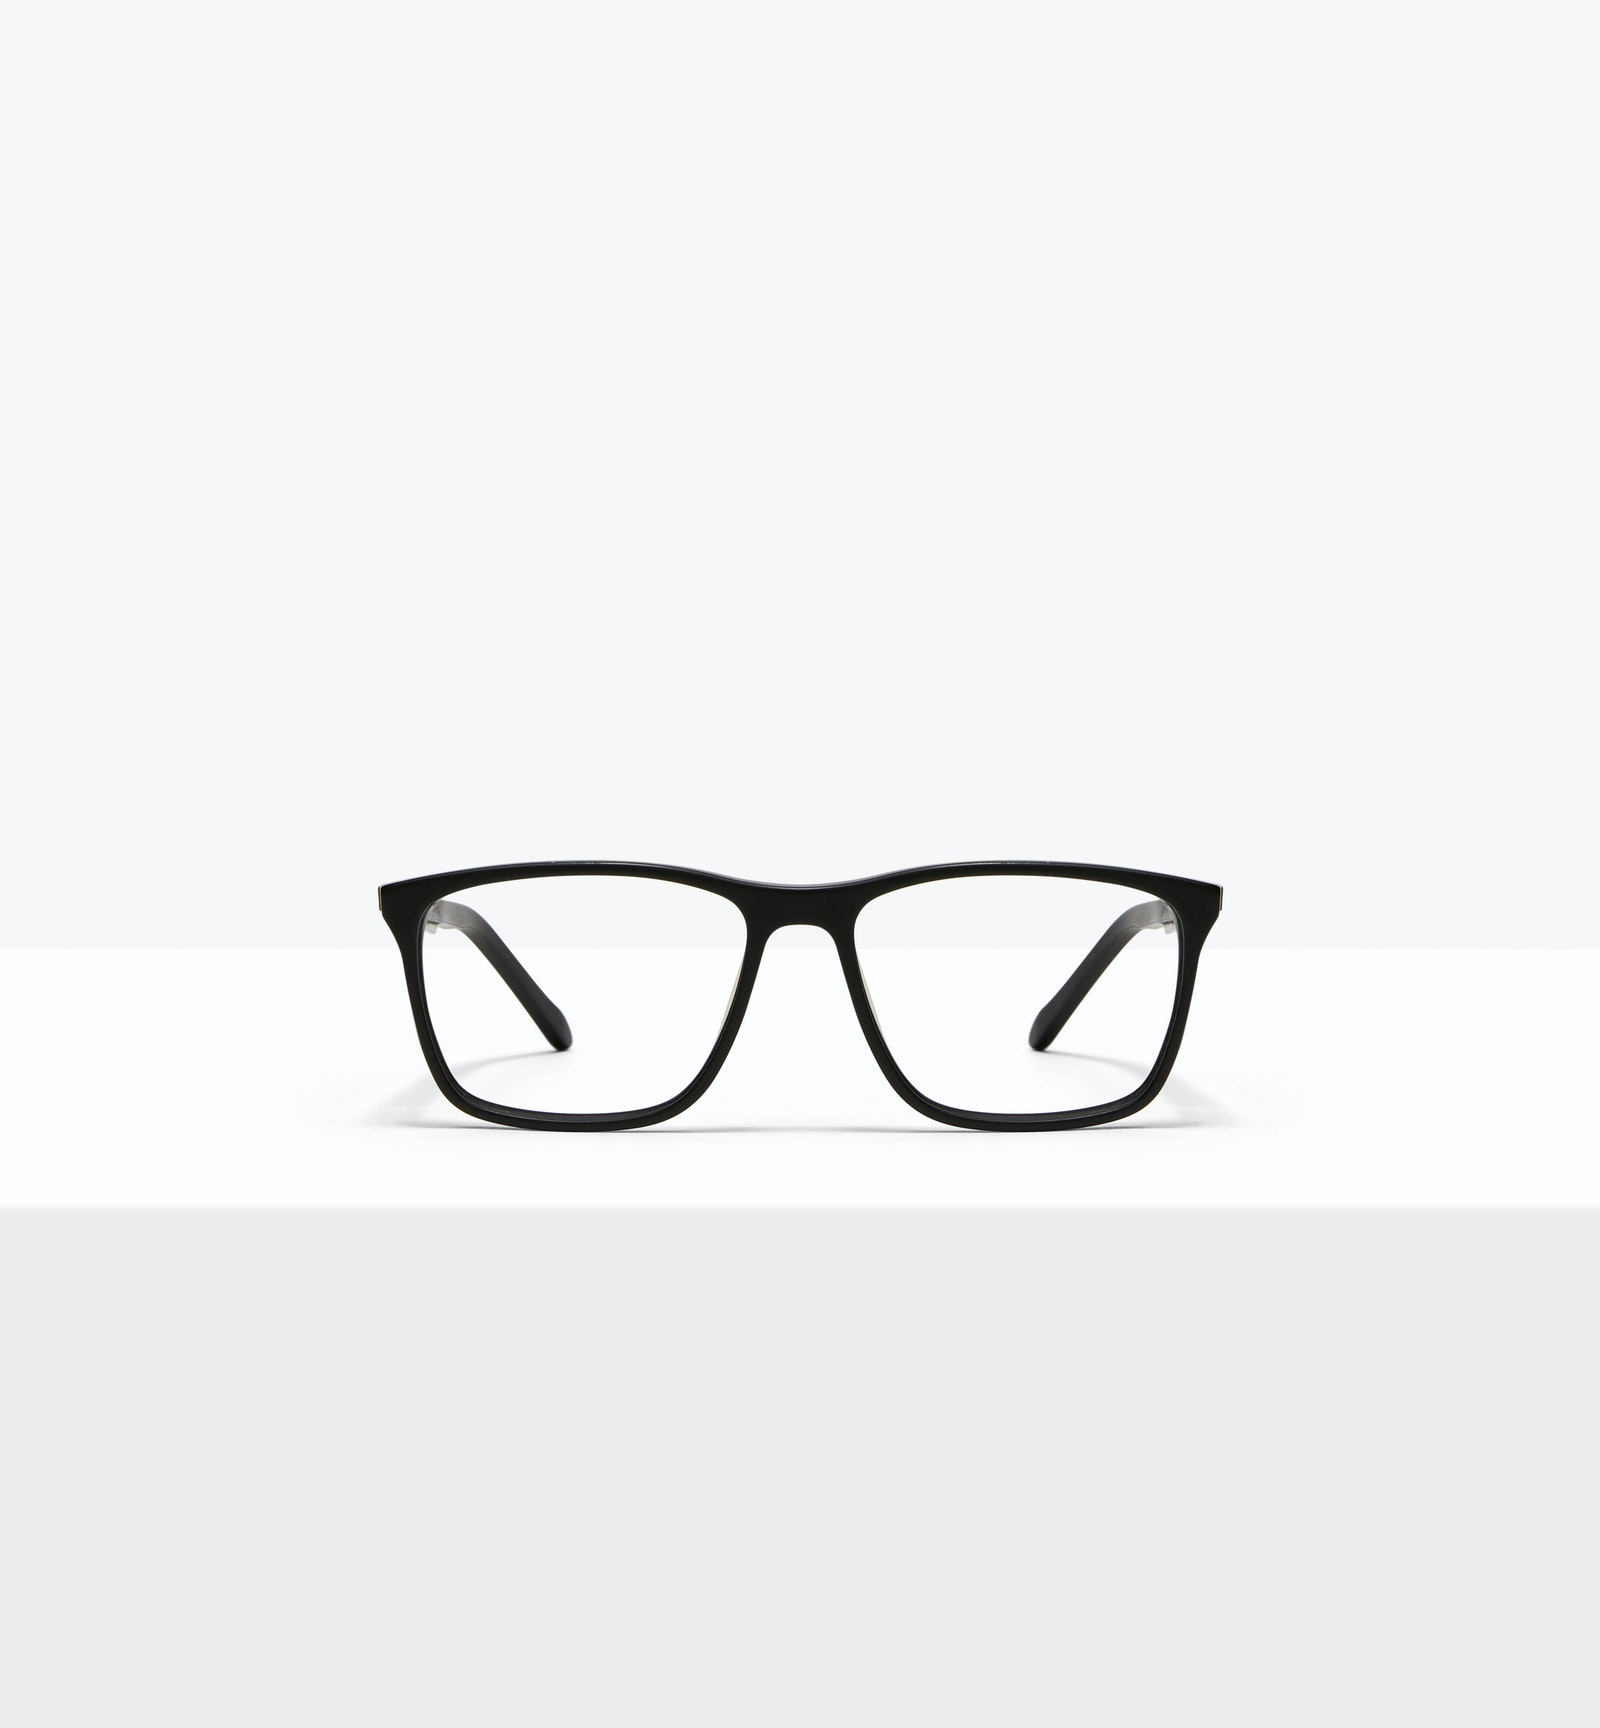 Affordable Fashion Glasses Rectangle Eyeglasses Men Skill Matte Black